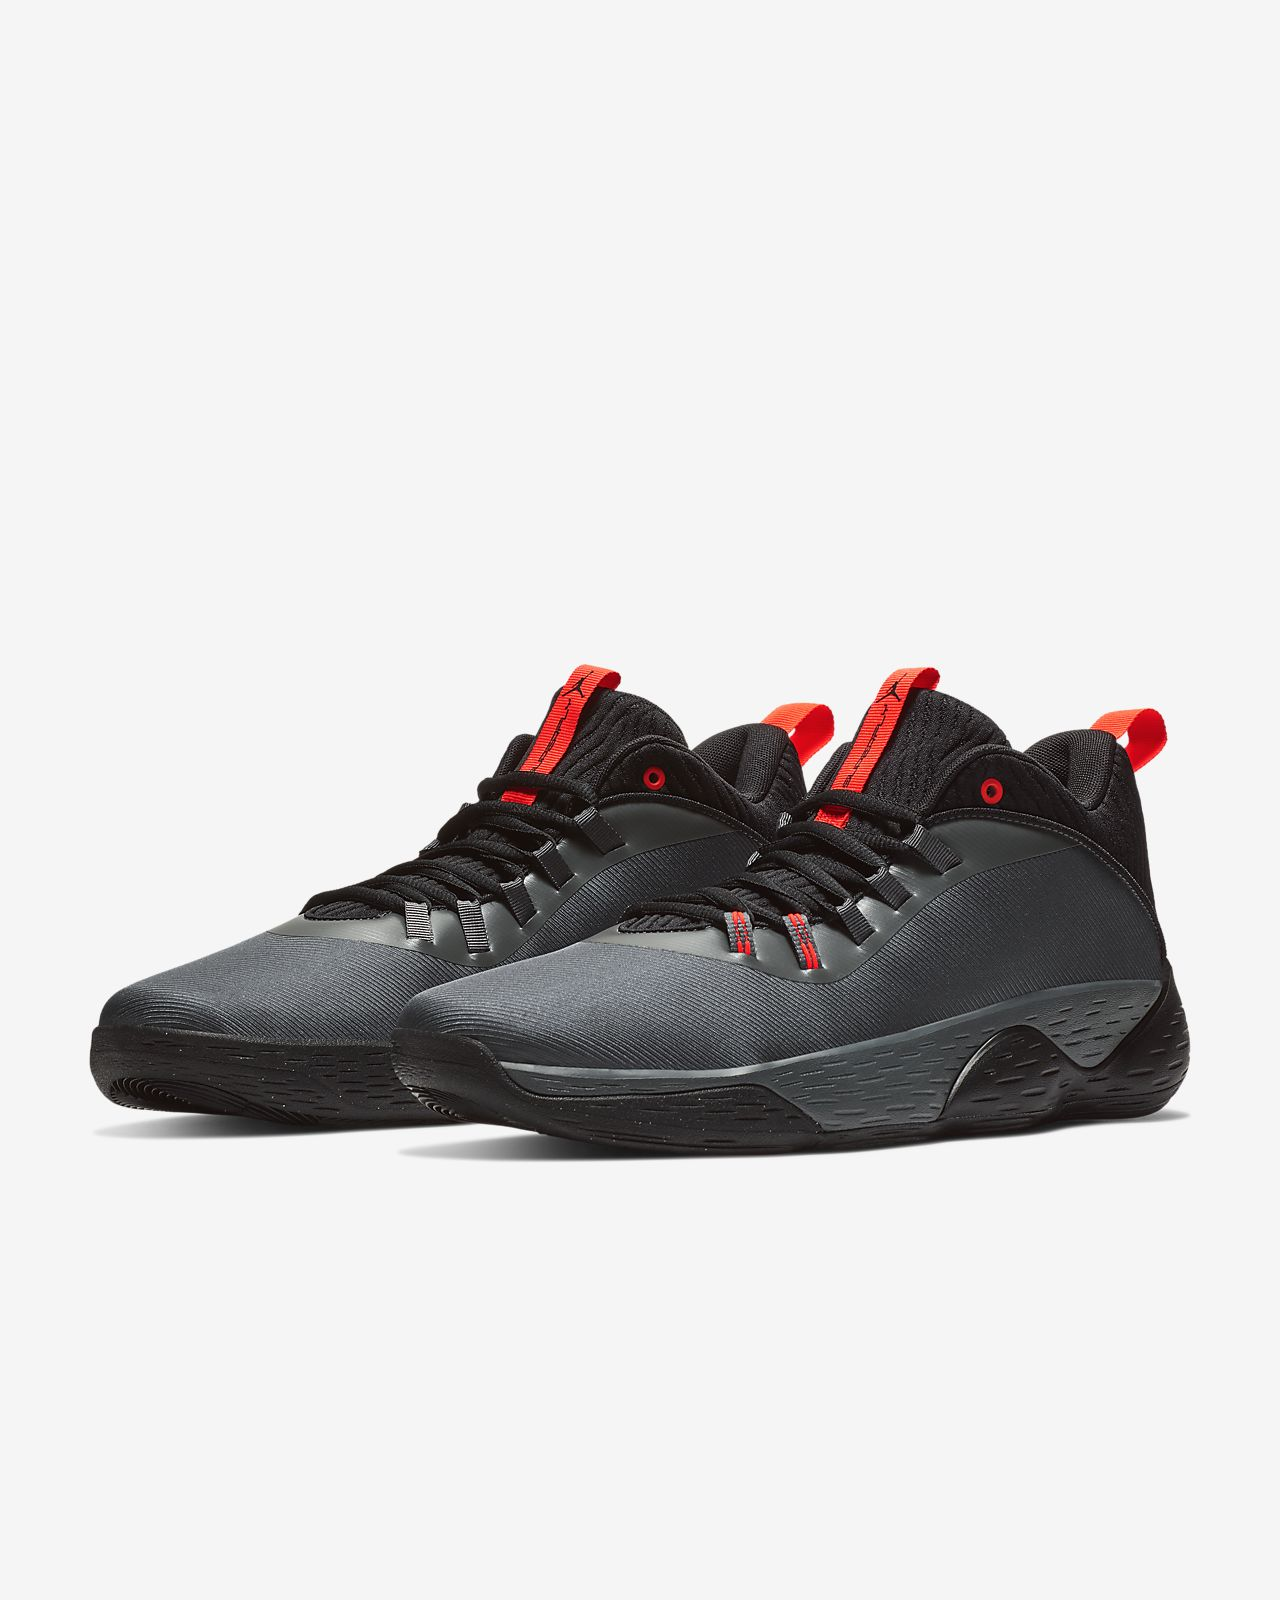 4112c4b41db467 Jordan Super.Fly MVP Low Men s Basketball Shoe. Nike.com NL